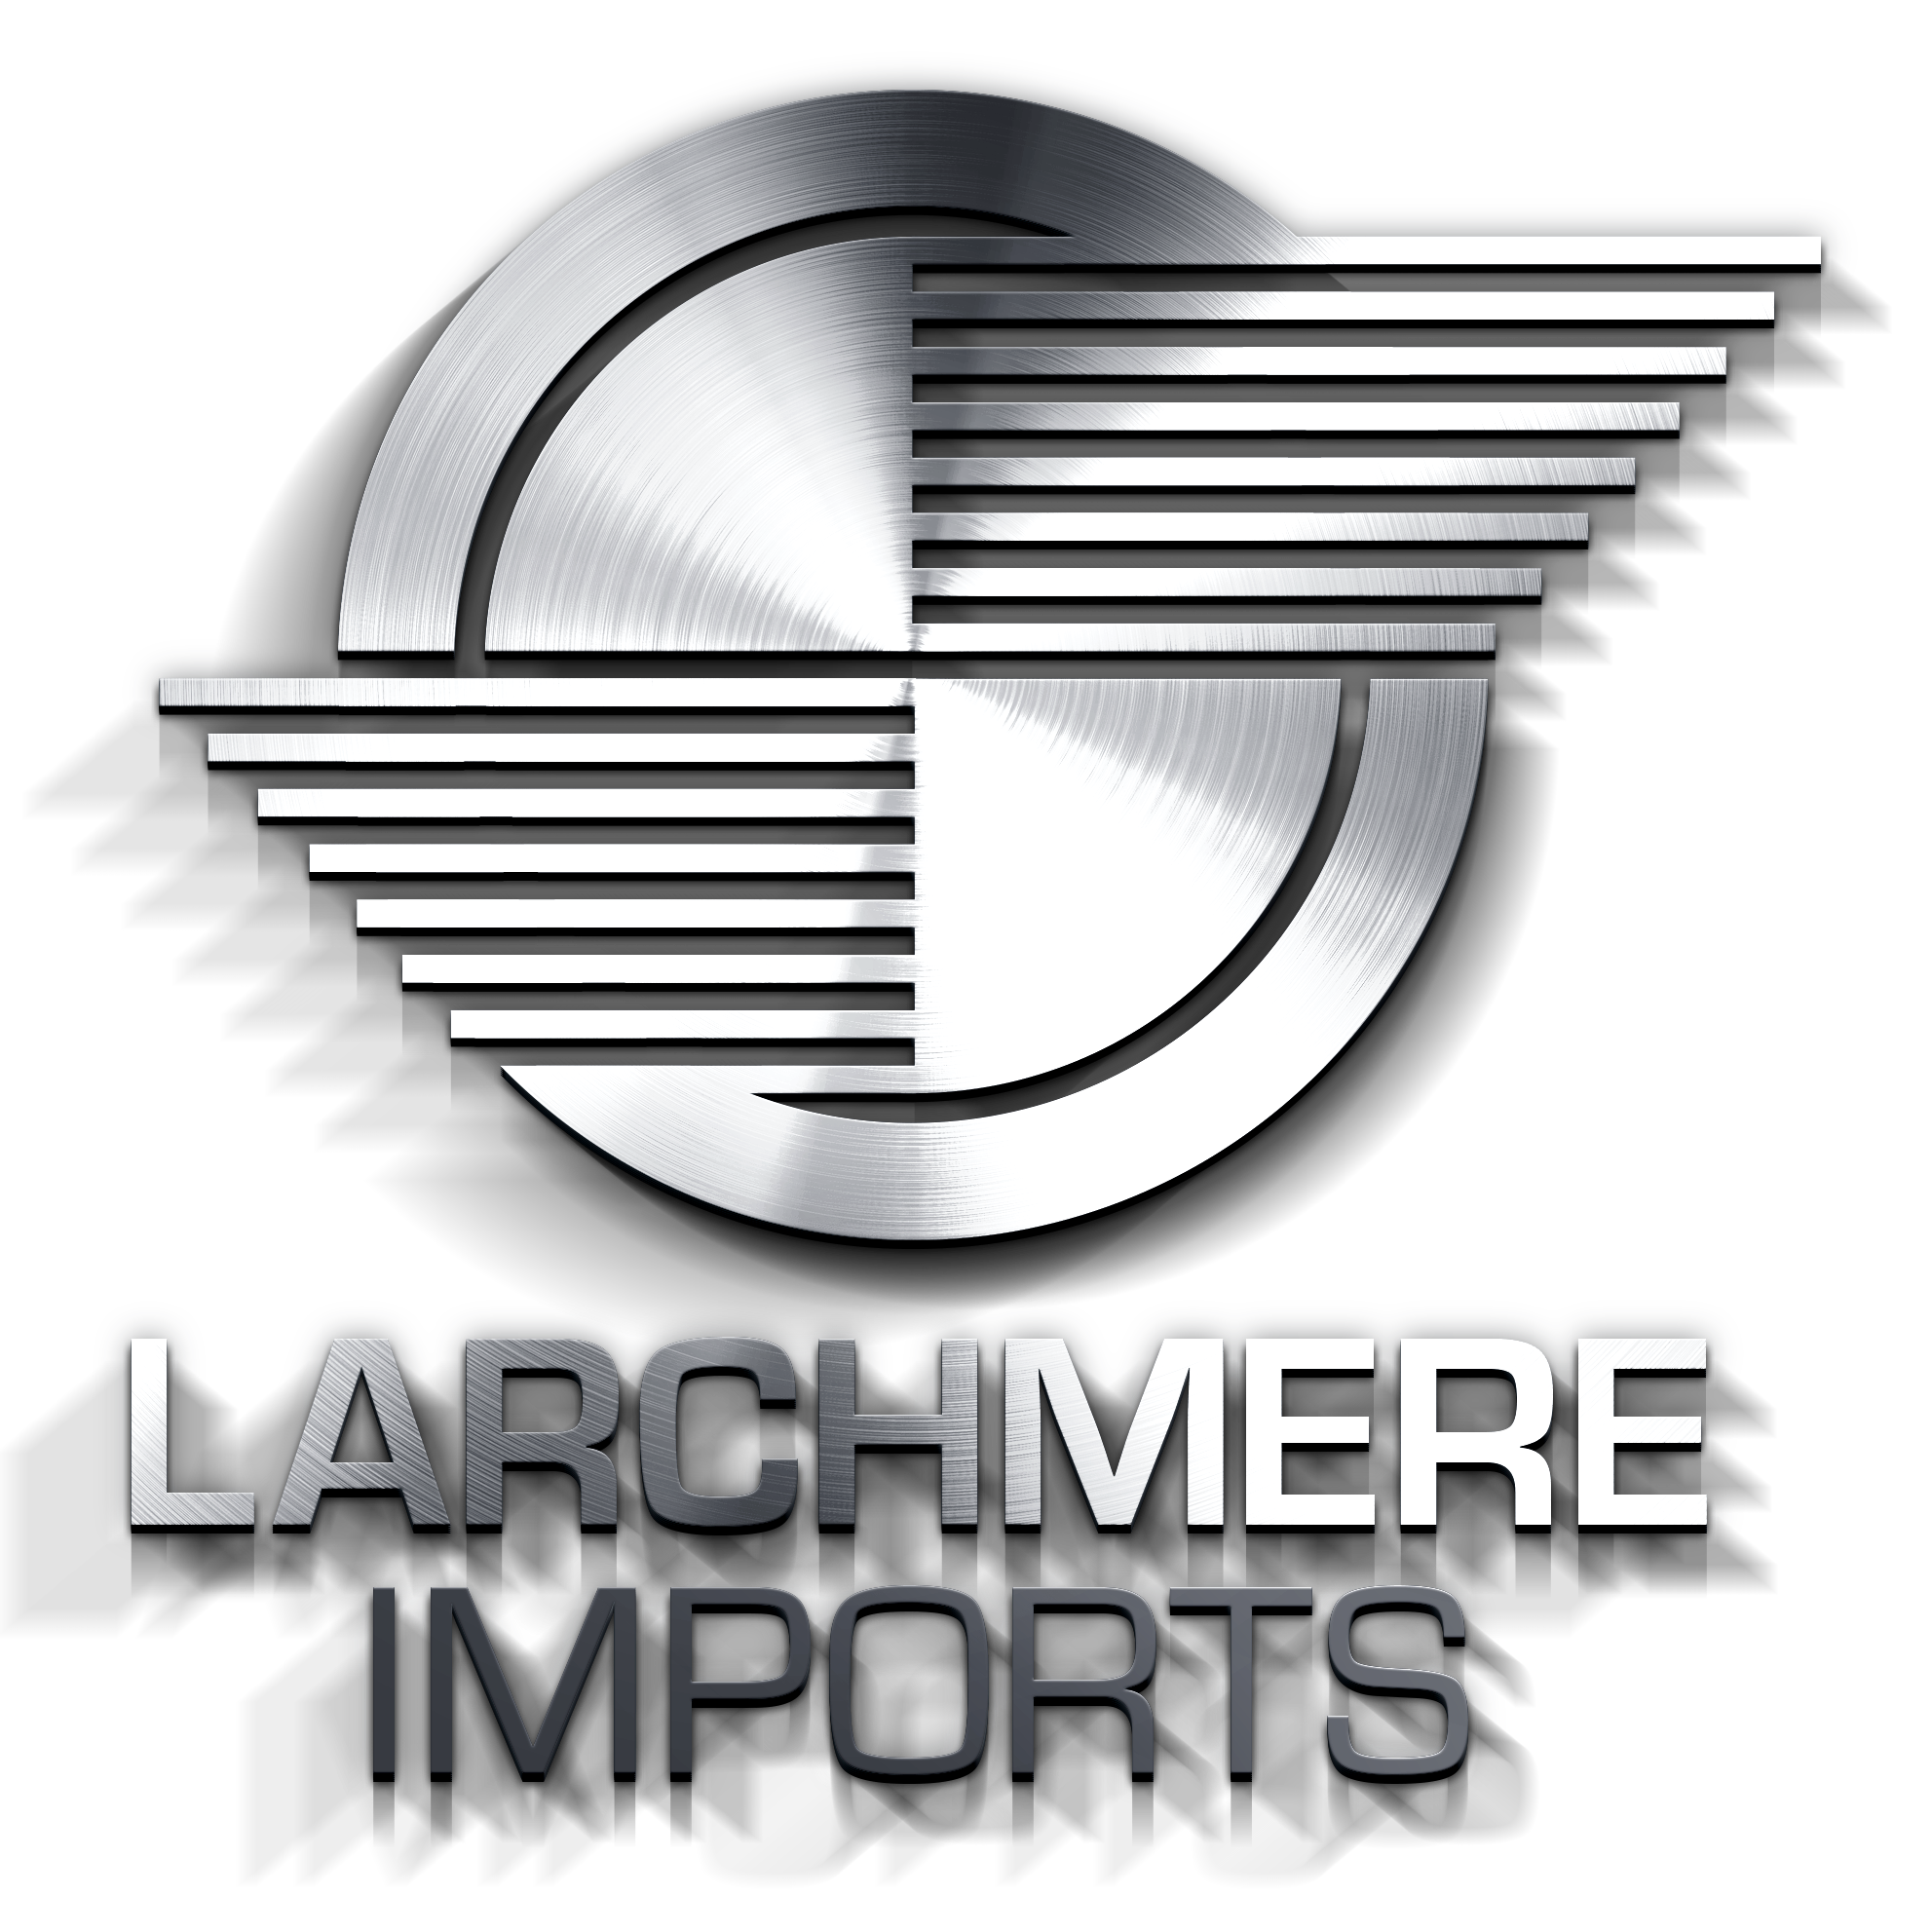 Larchmere Imports image 5